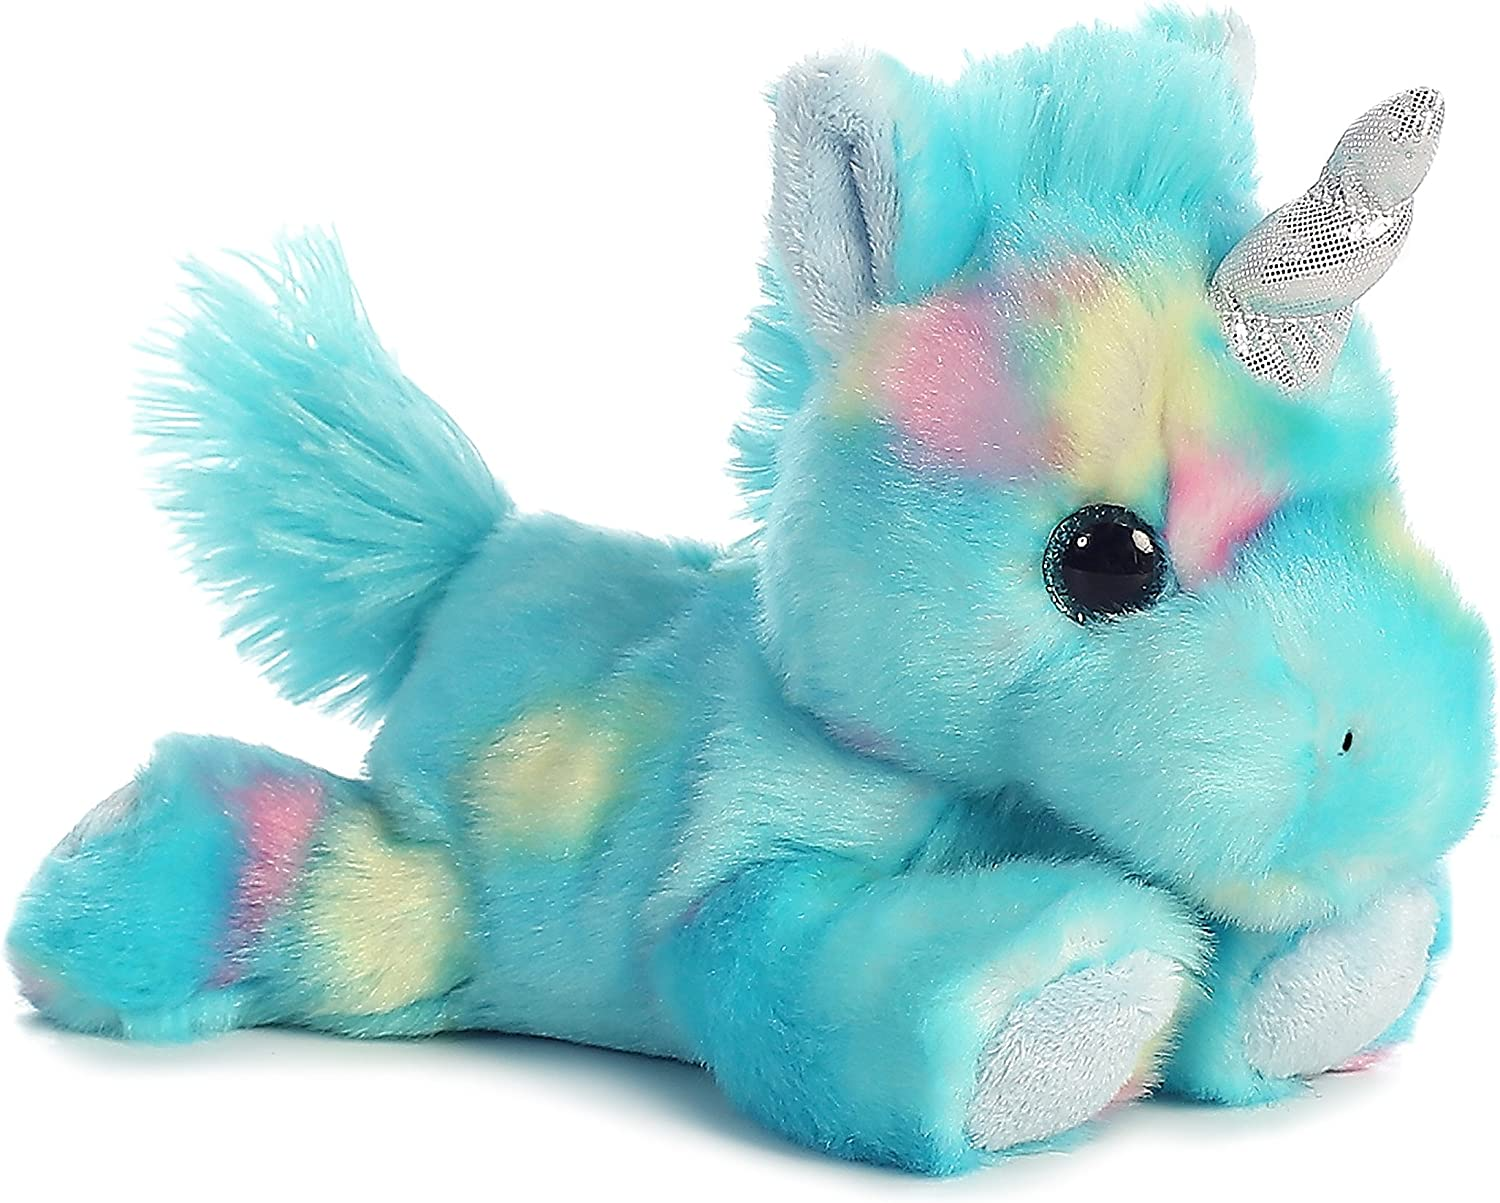 Top 15 Best Unicorn Toys And Gift For Girls in 2020 13